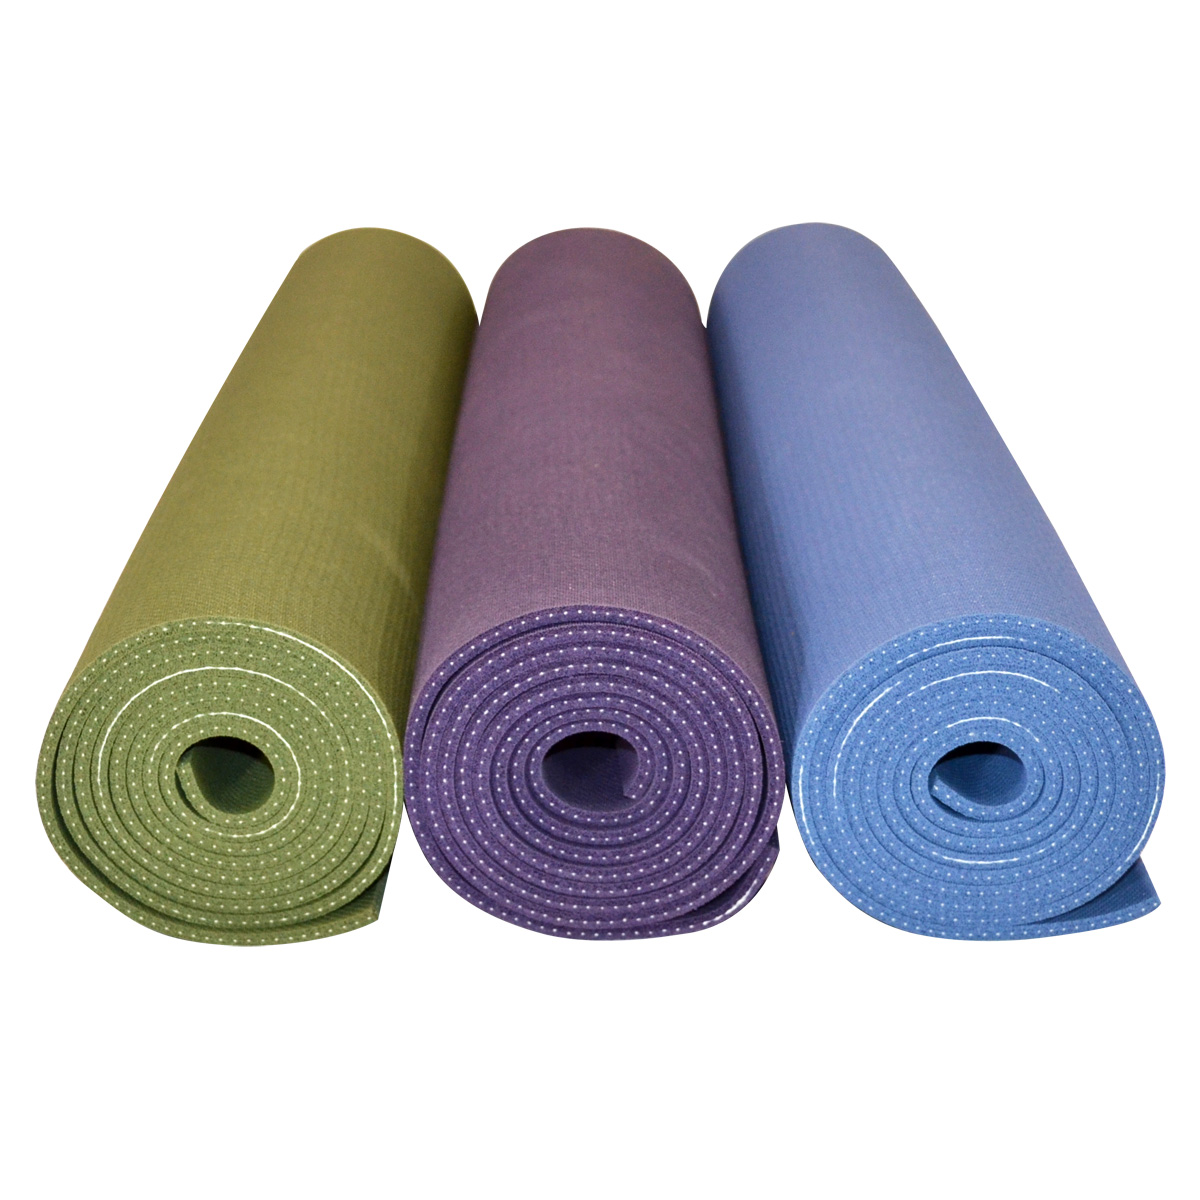 Yoga Direct Natural Rubber Yoga Mat by Yoga Direct